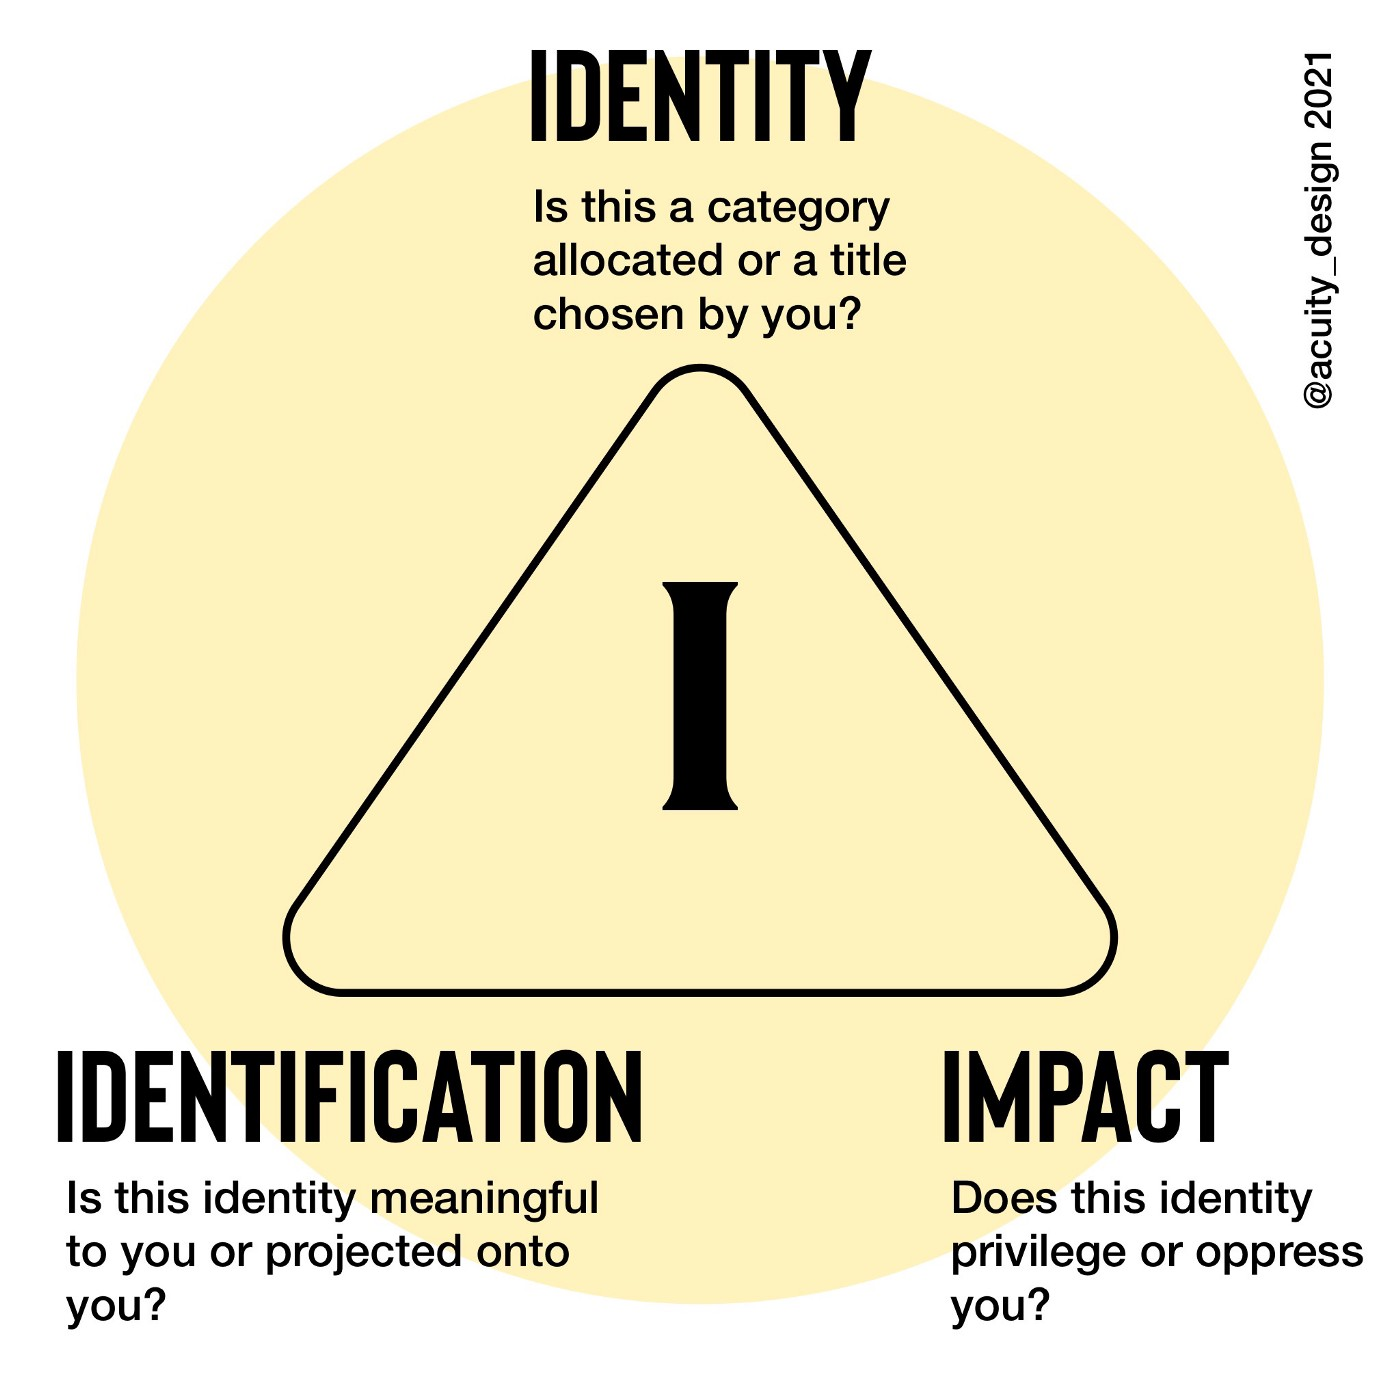 Triangle diagram of three I's—identity, identification and impact. Is identity chosen or allocated? Do you identify with this category or title? How does it impact your life: does it oppress or privilege?